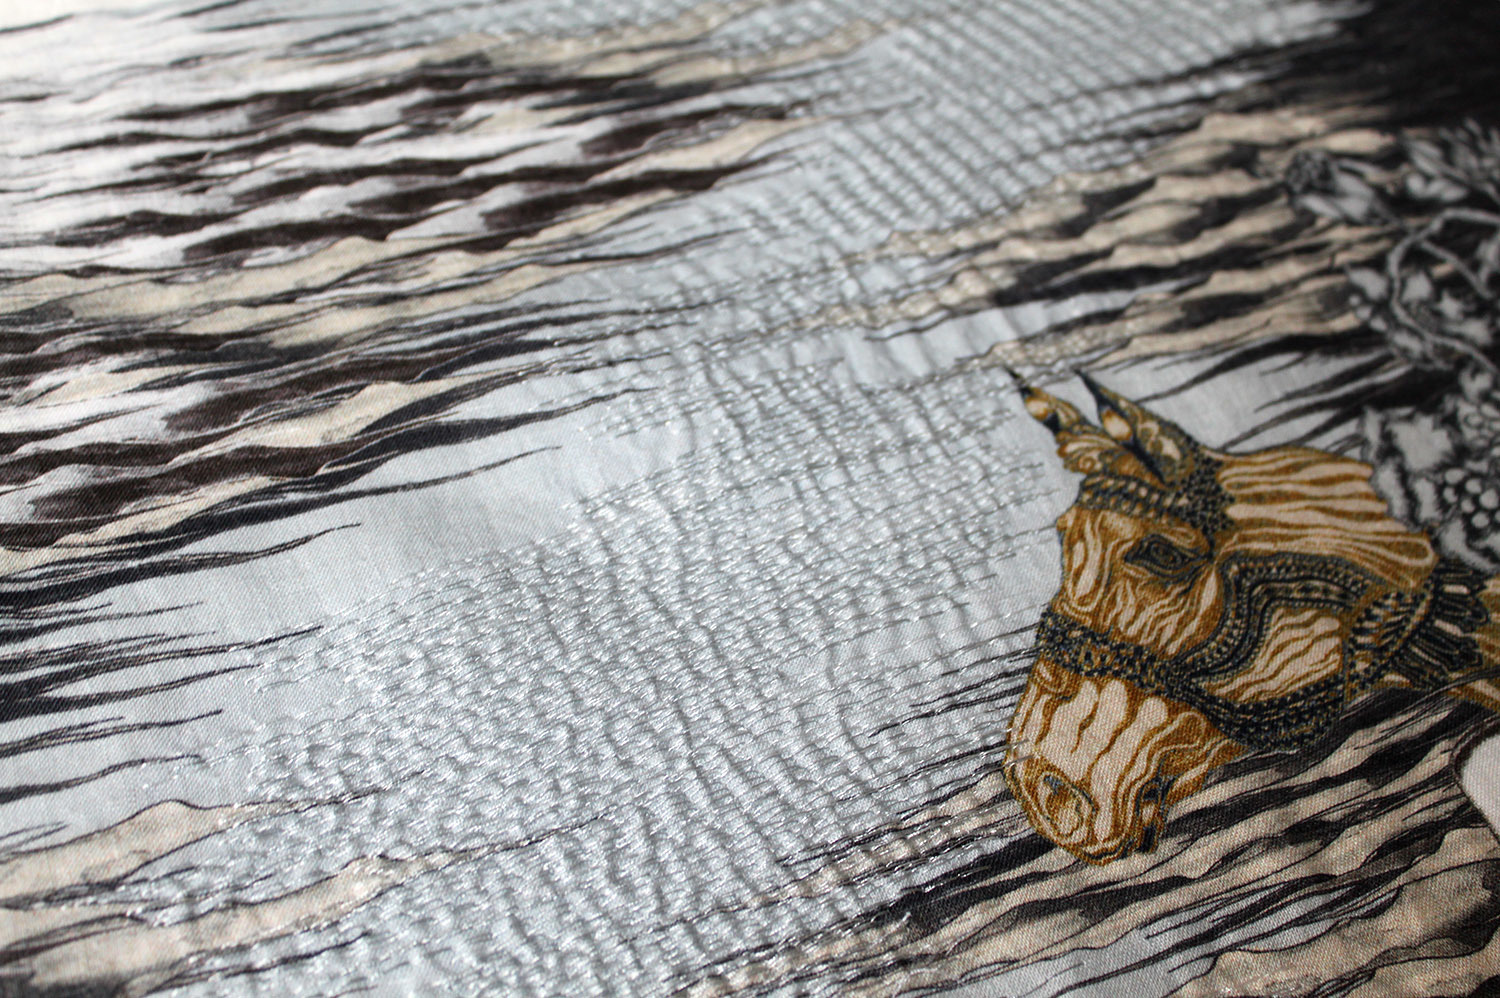 Hawthorne & Heaney on Embroidery in Illustration - Lica Tang London Hand Embroidery